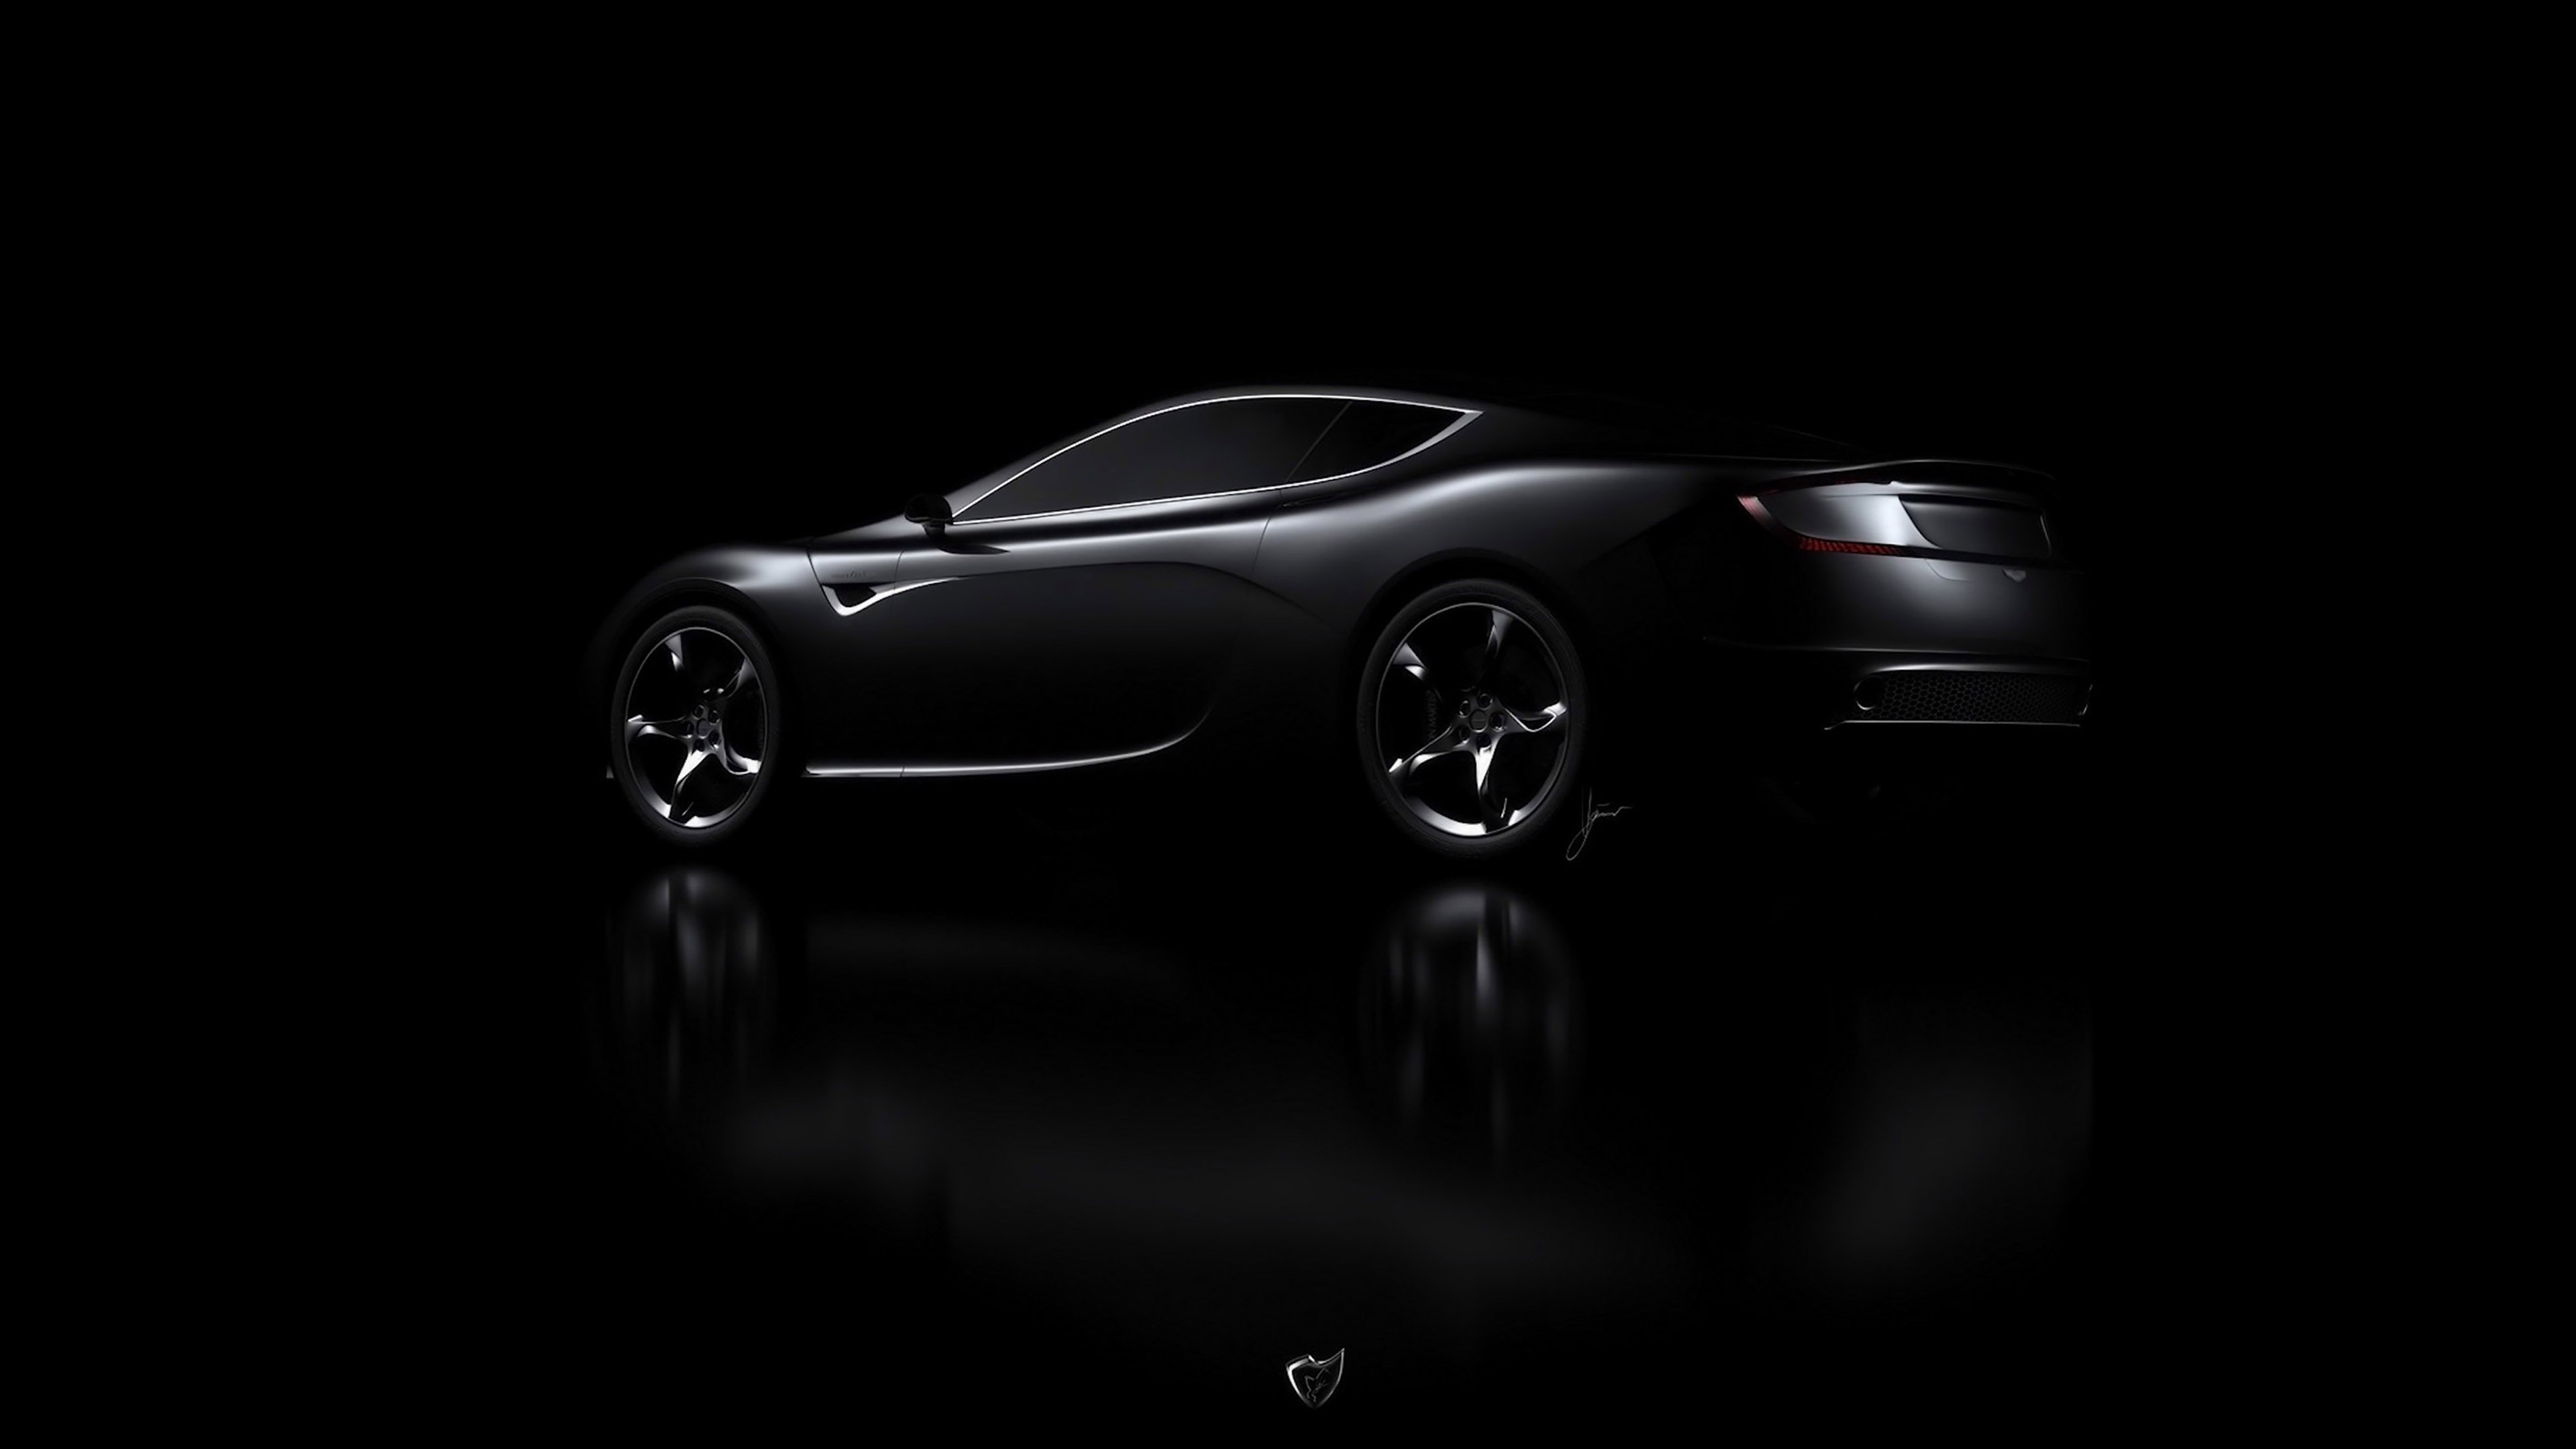 Aj06 Aston Martin Black Car Dark Wallpaper